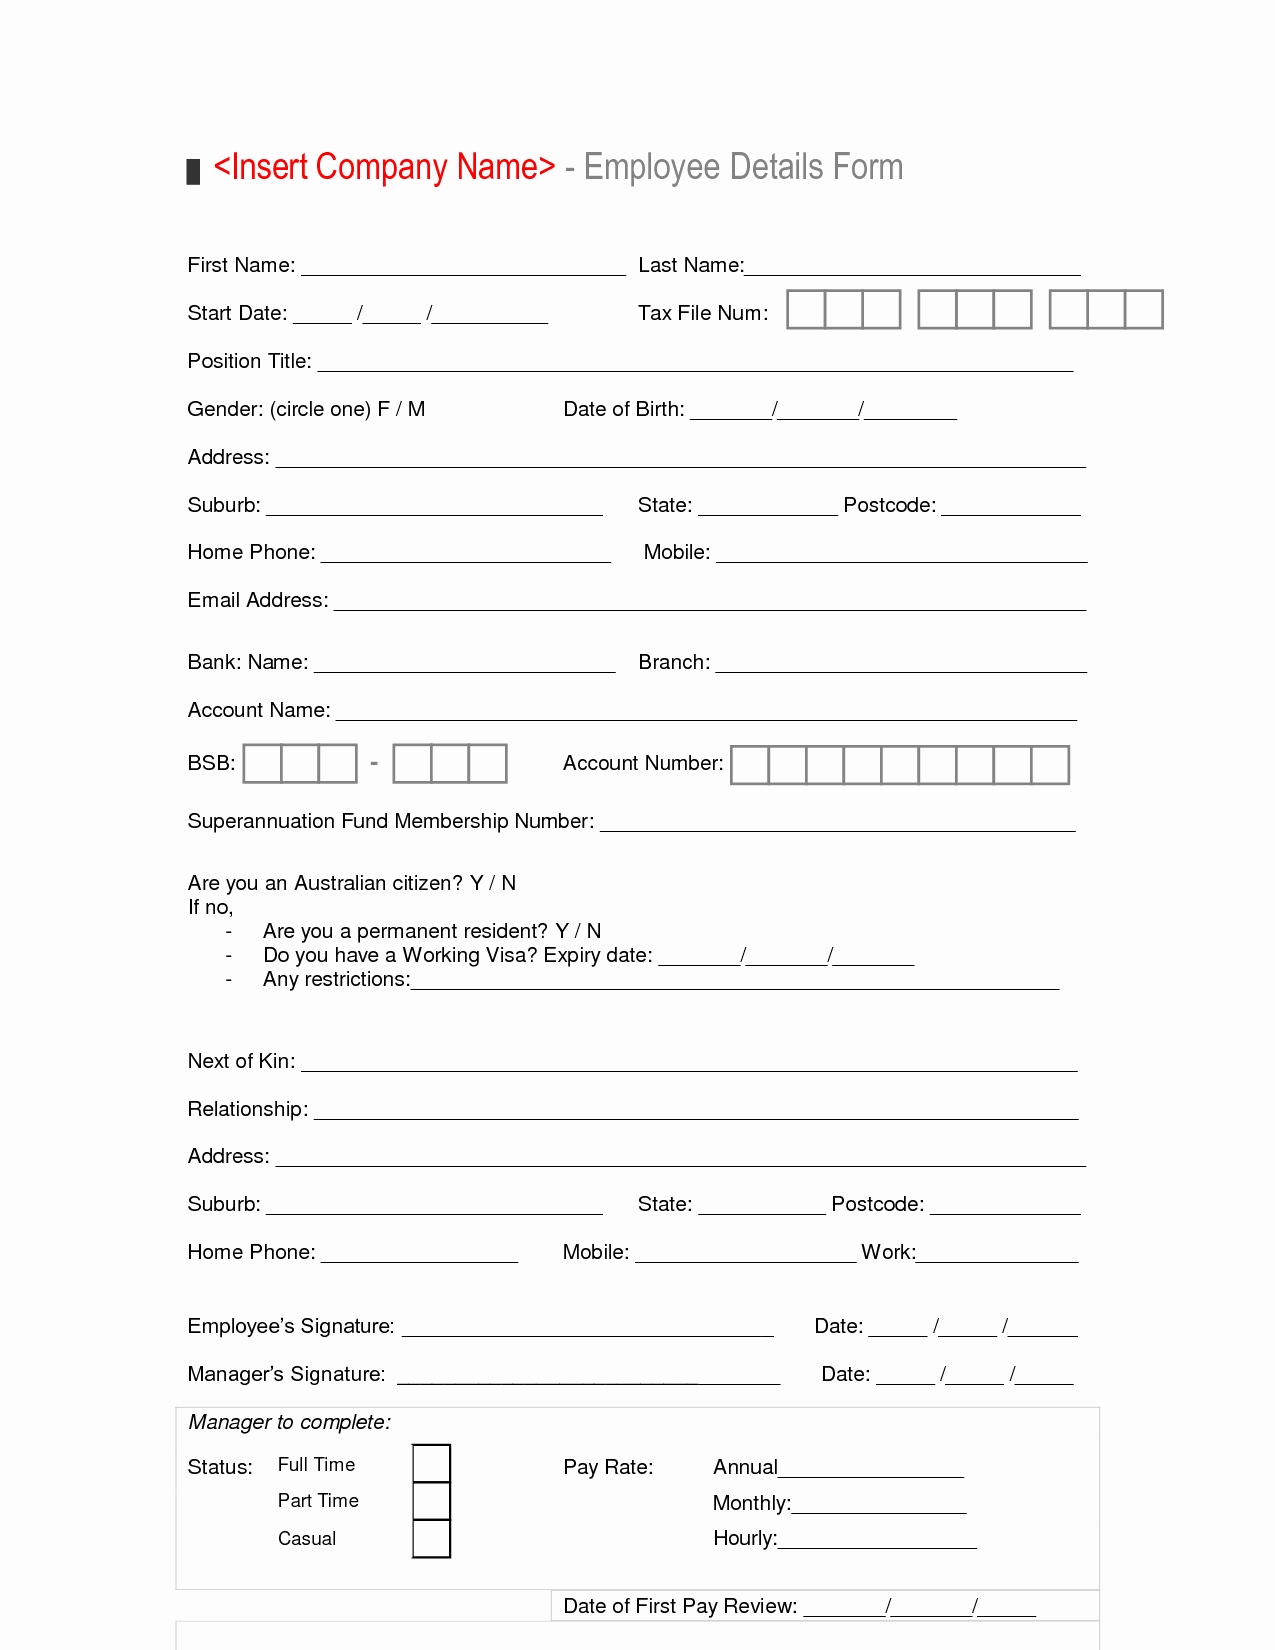 Employment Information form Template Luxury New Hire Employee Details form Template Sample Vlashed